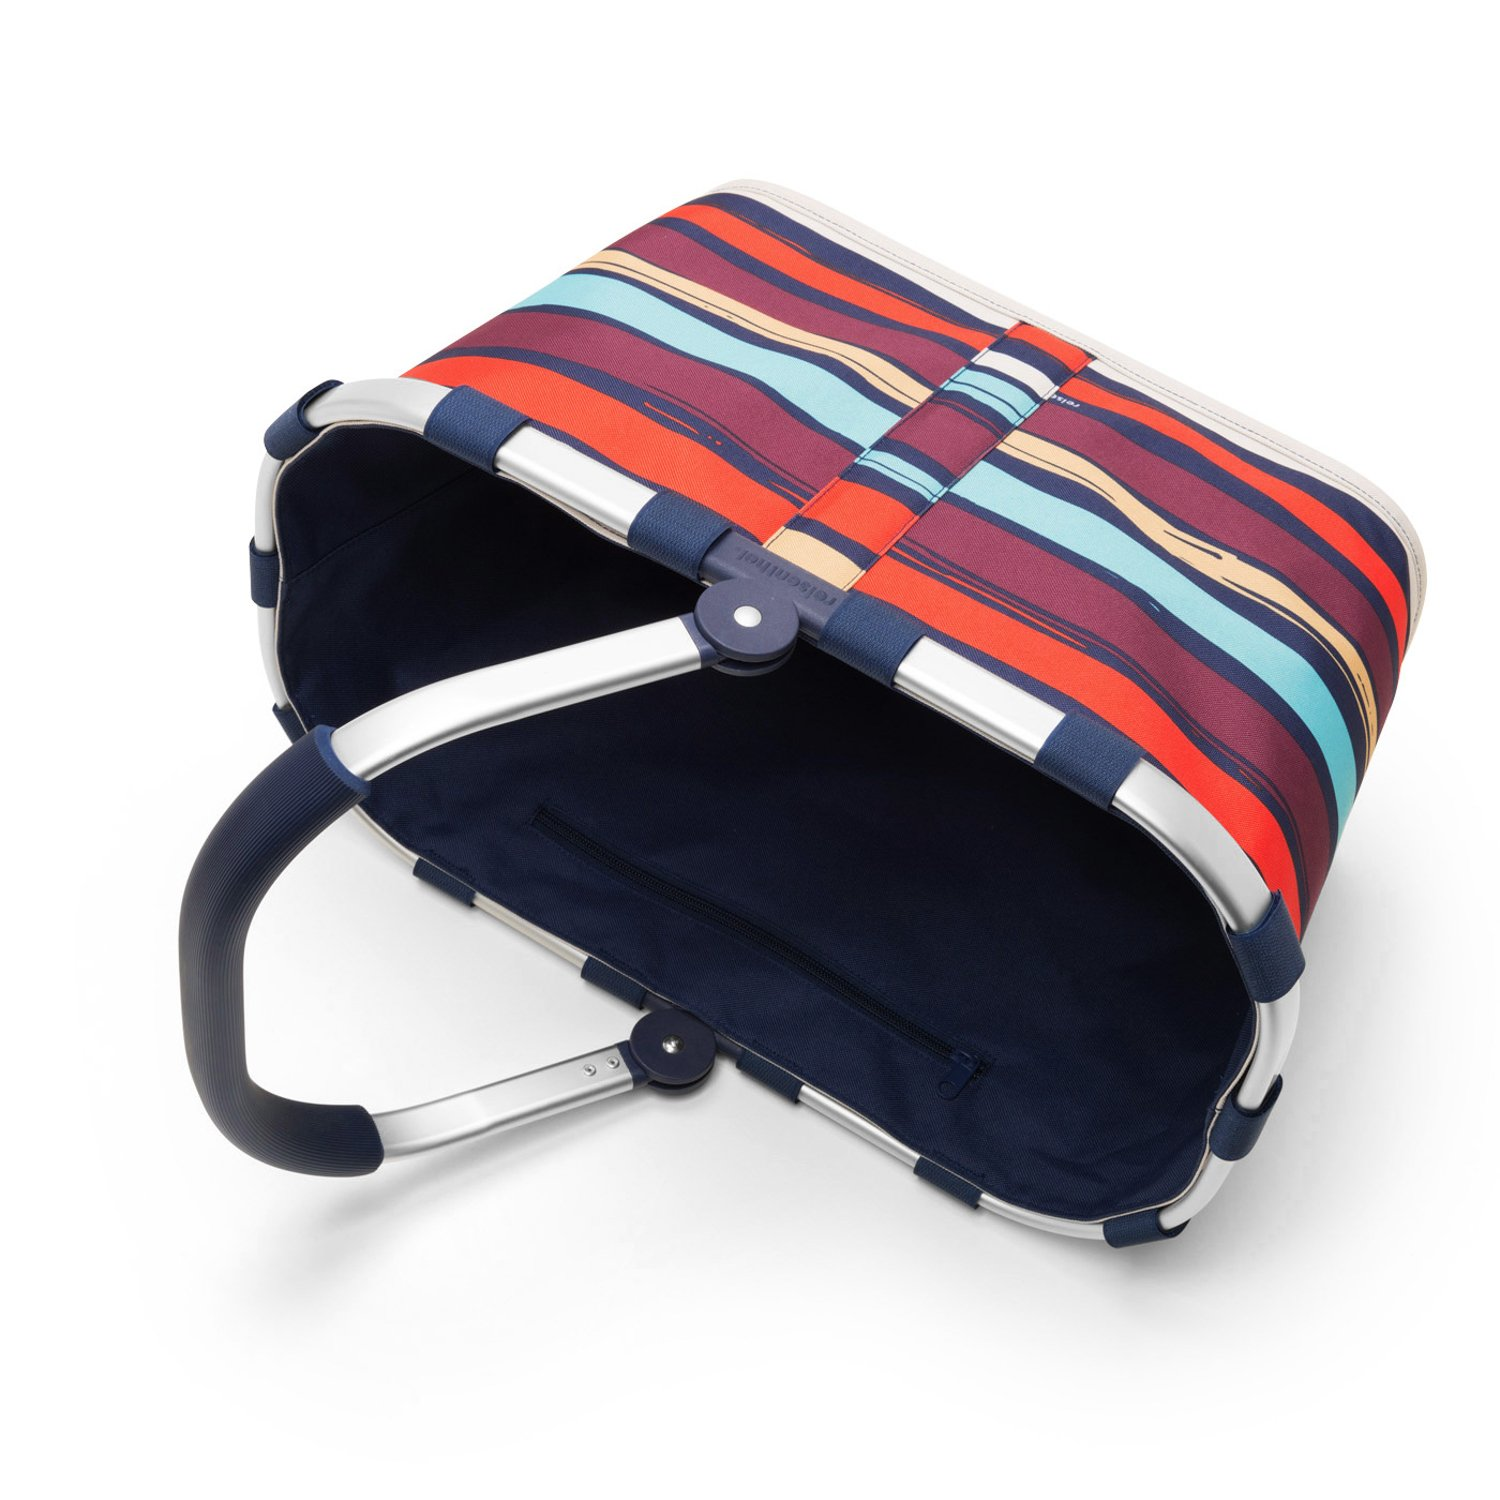 reisenthel Carrybag Fabric Picnic Tote, Sturdy Lightweight Basket Home Decor Multicolor